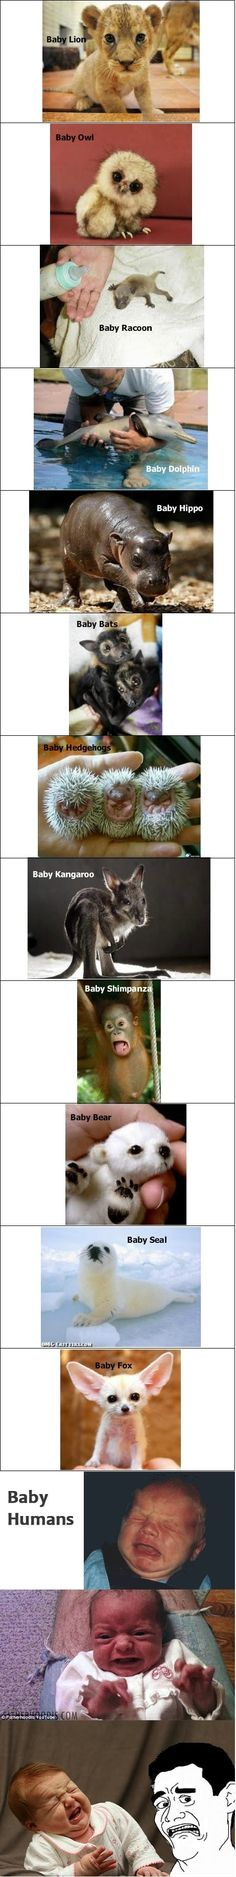 And people wonder why I like animals more than people...